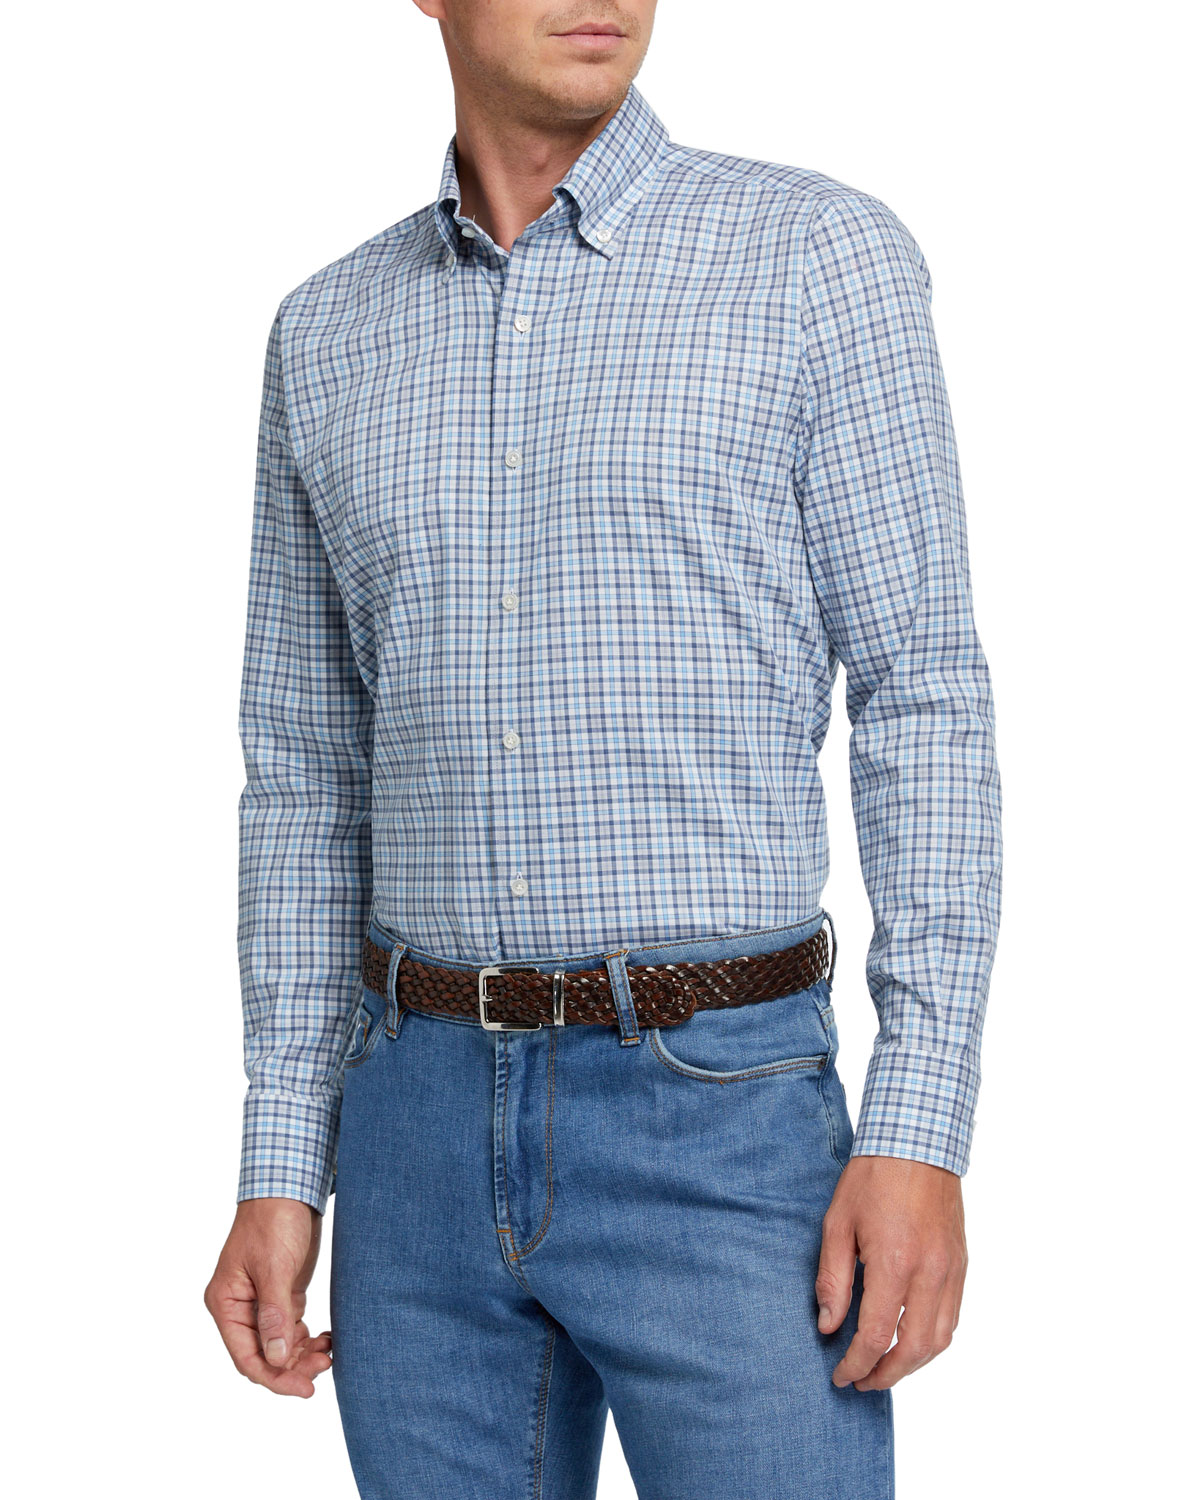 Peter Millar Tops MEN'S SMALL-PLAID SPORT SHIRT